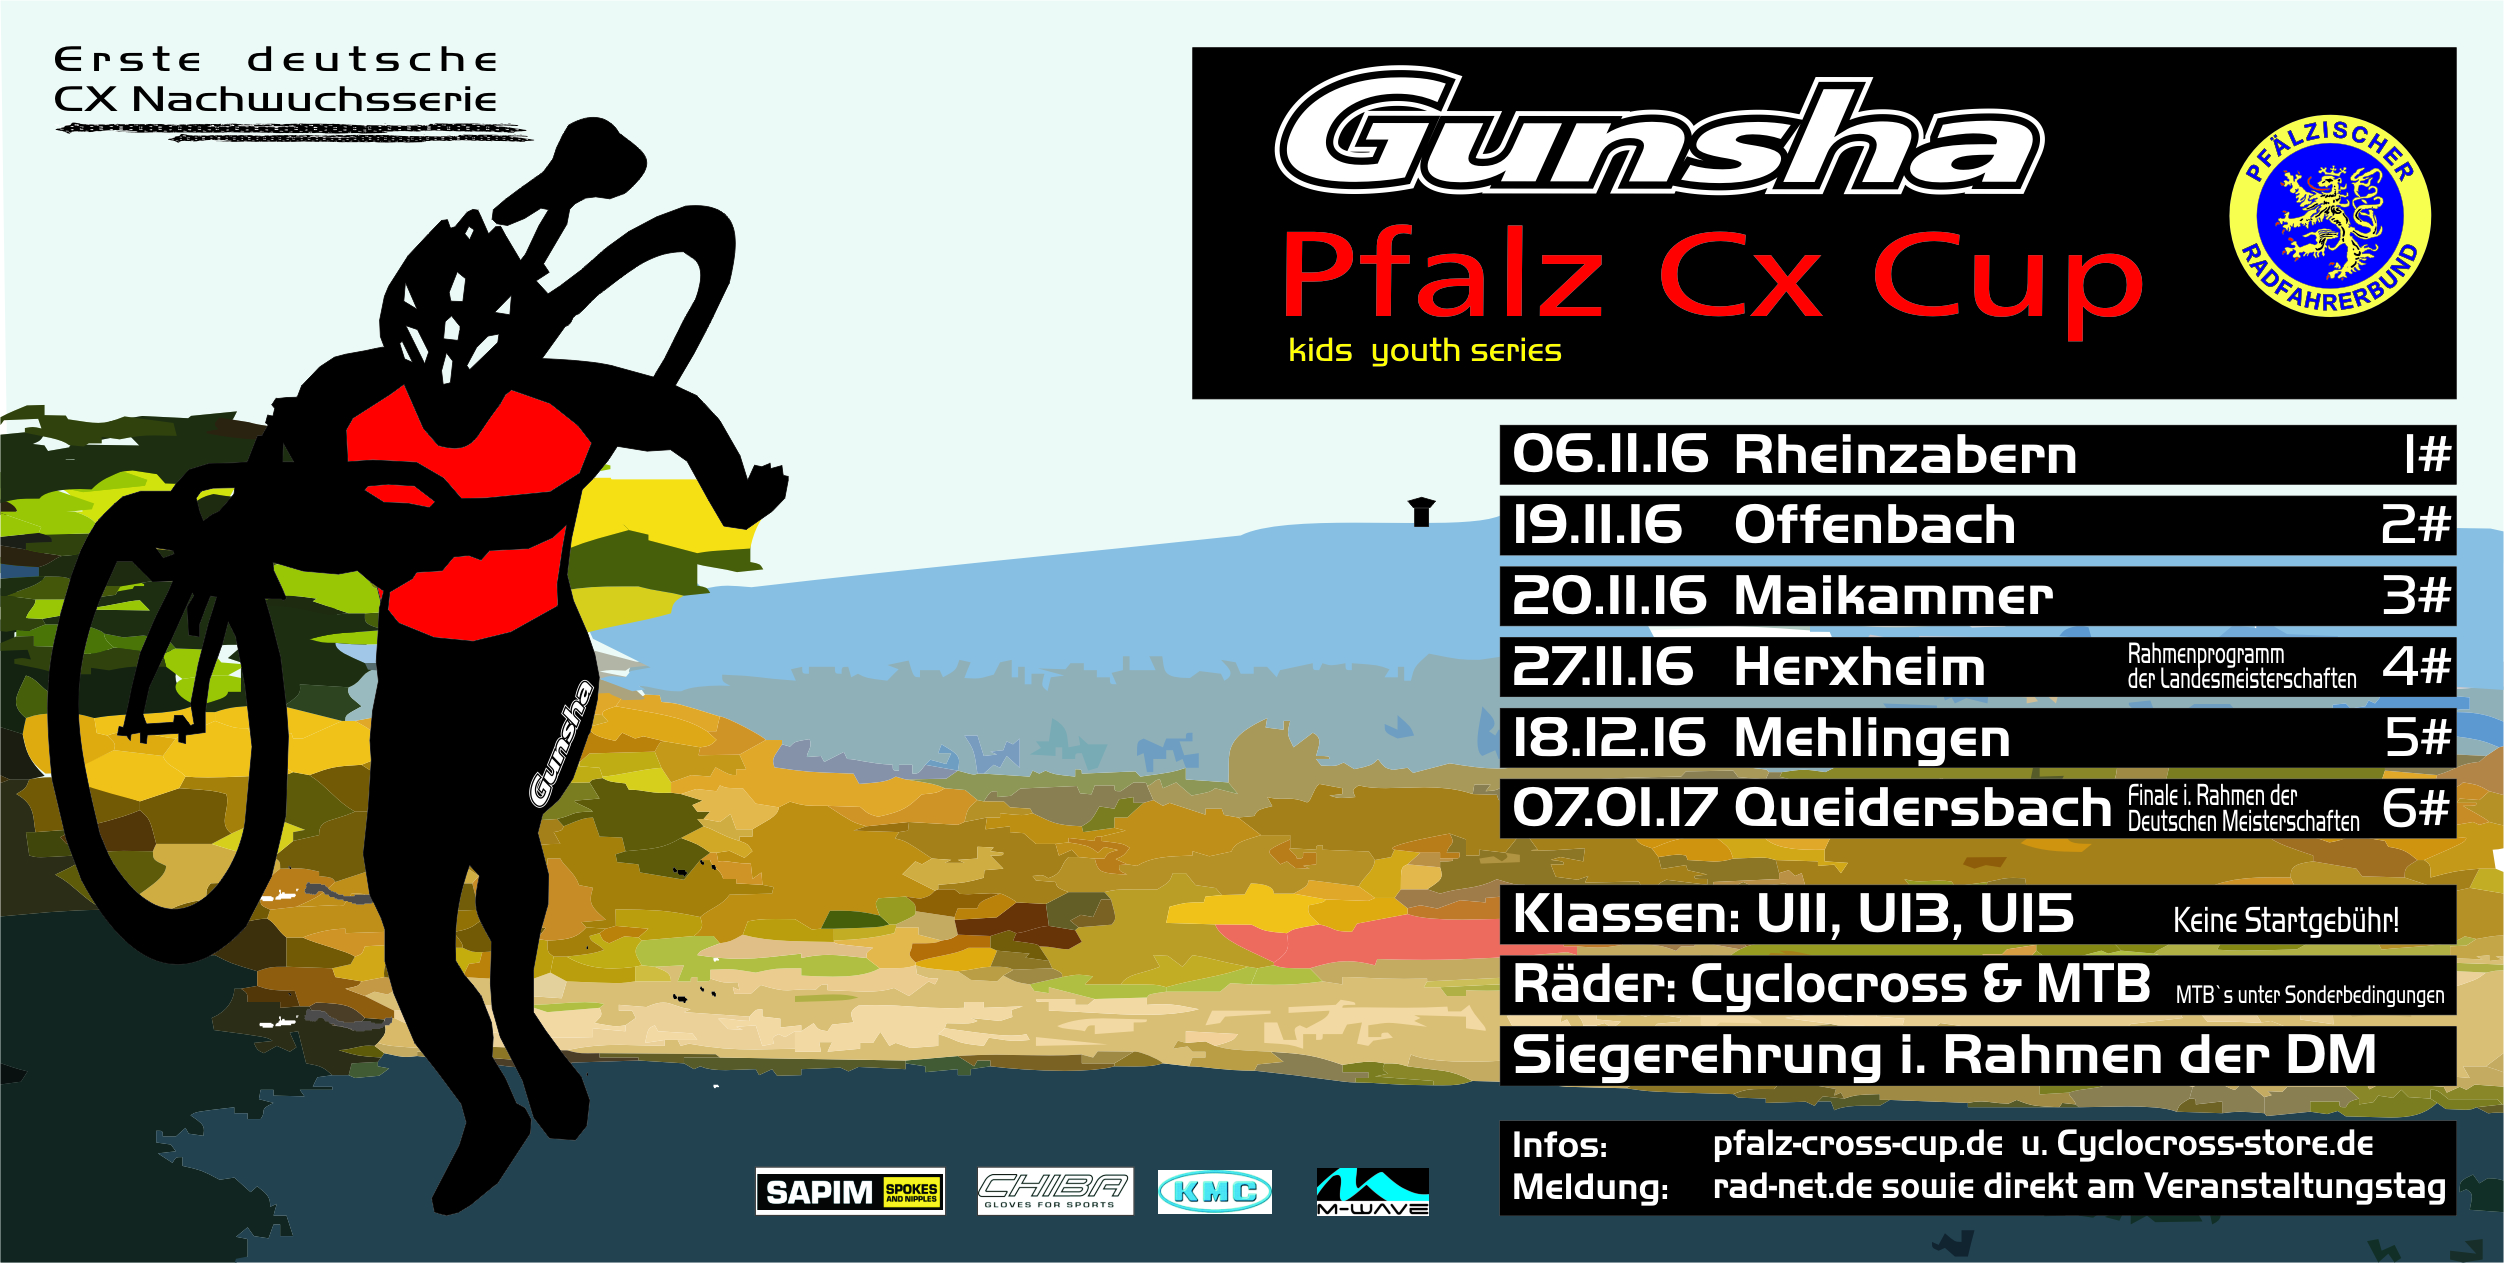 Flyer Gunsha CX Cup 1